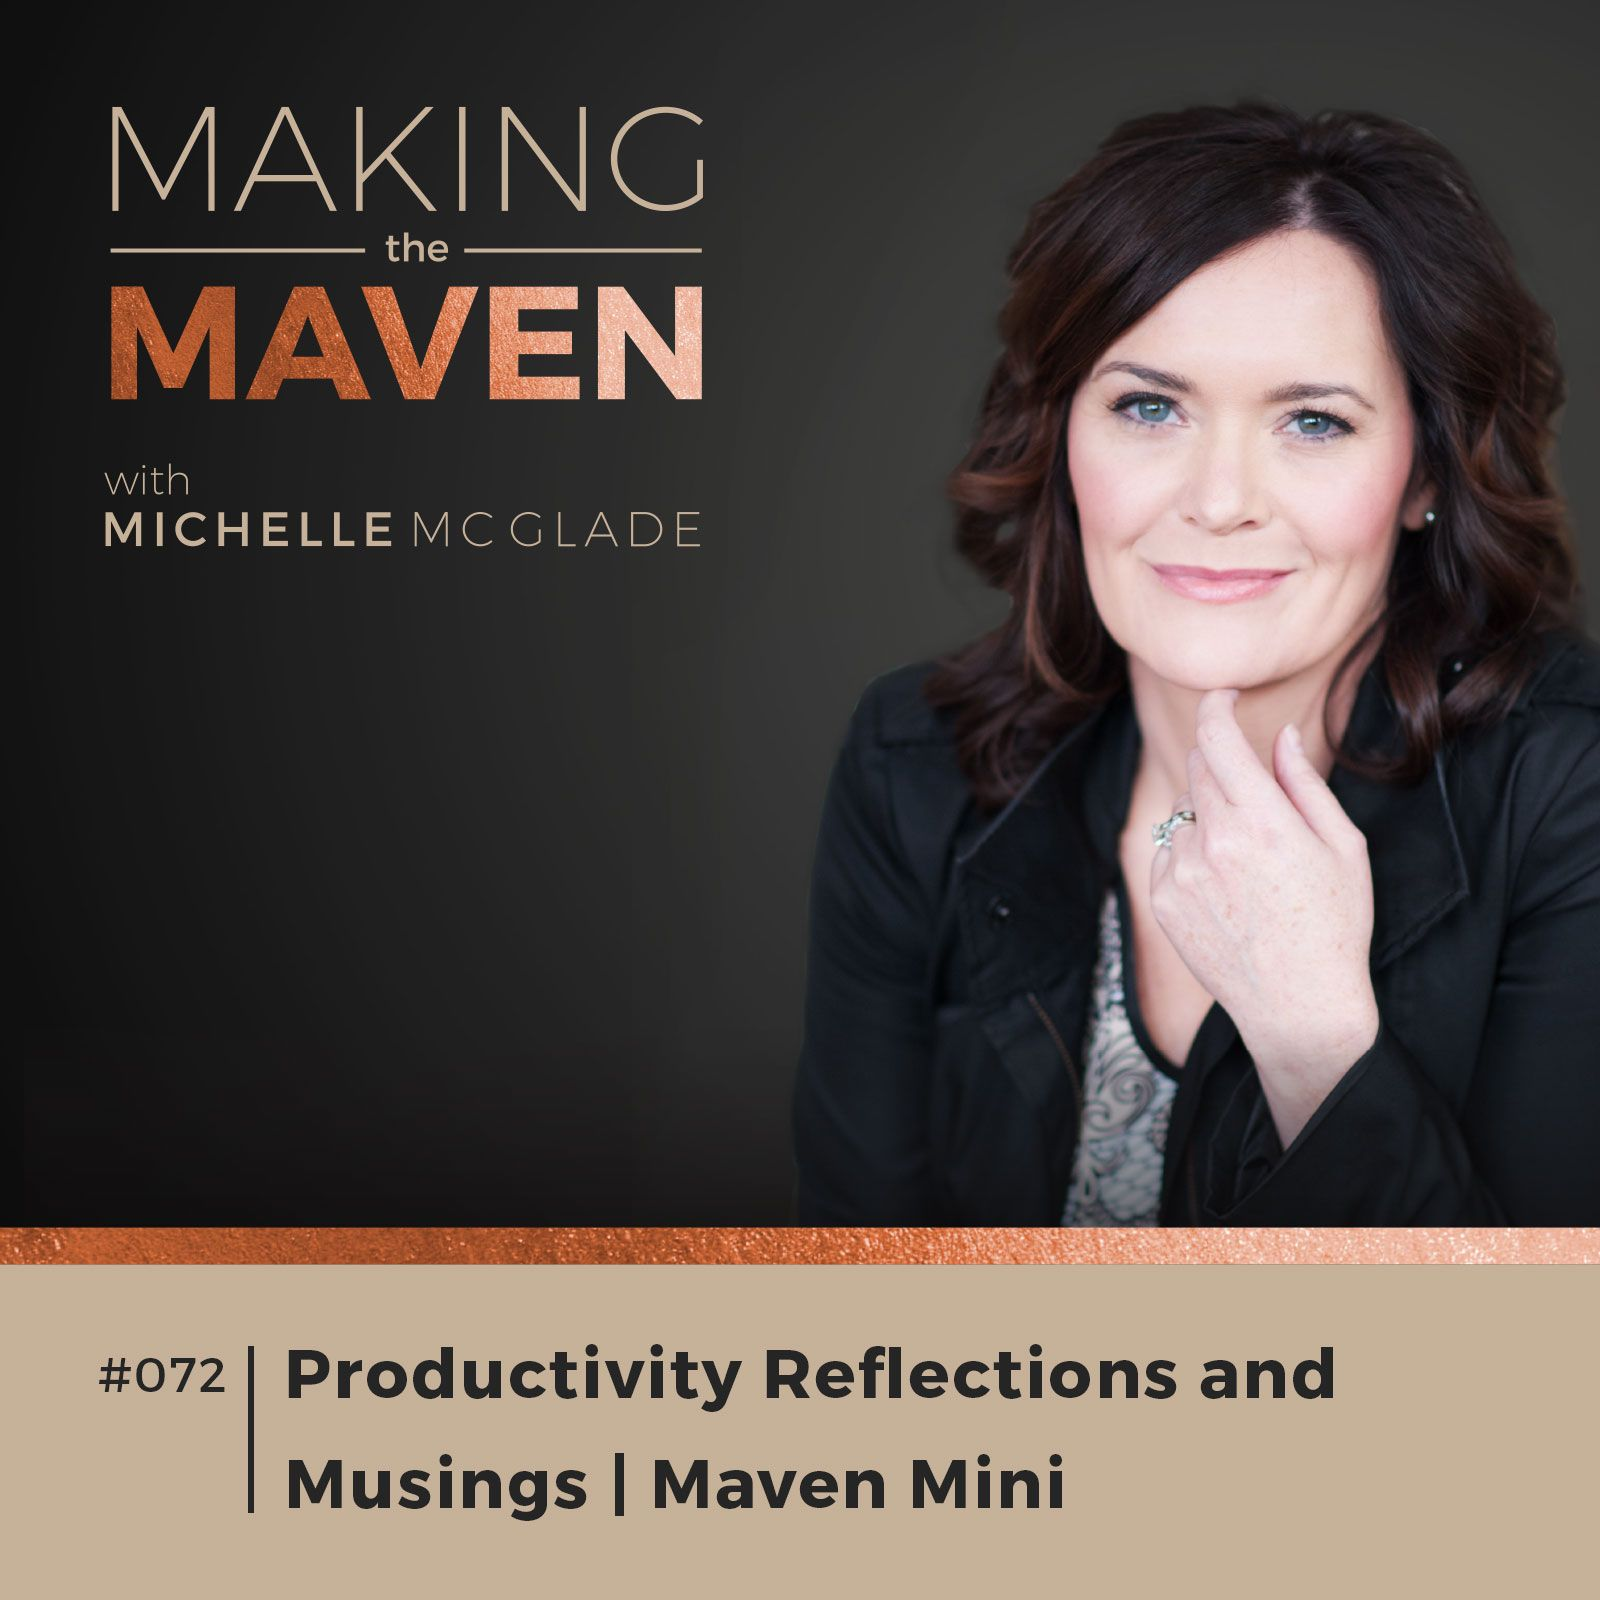 I want to share takeaways that I've experienced as I built a business that fit more of my lifestyle needs in this Productivity Reflections and Musings episode.